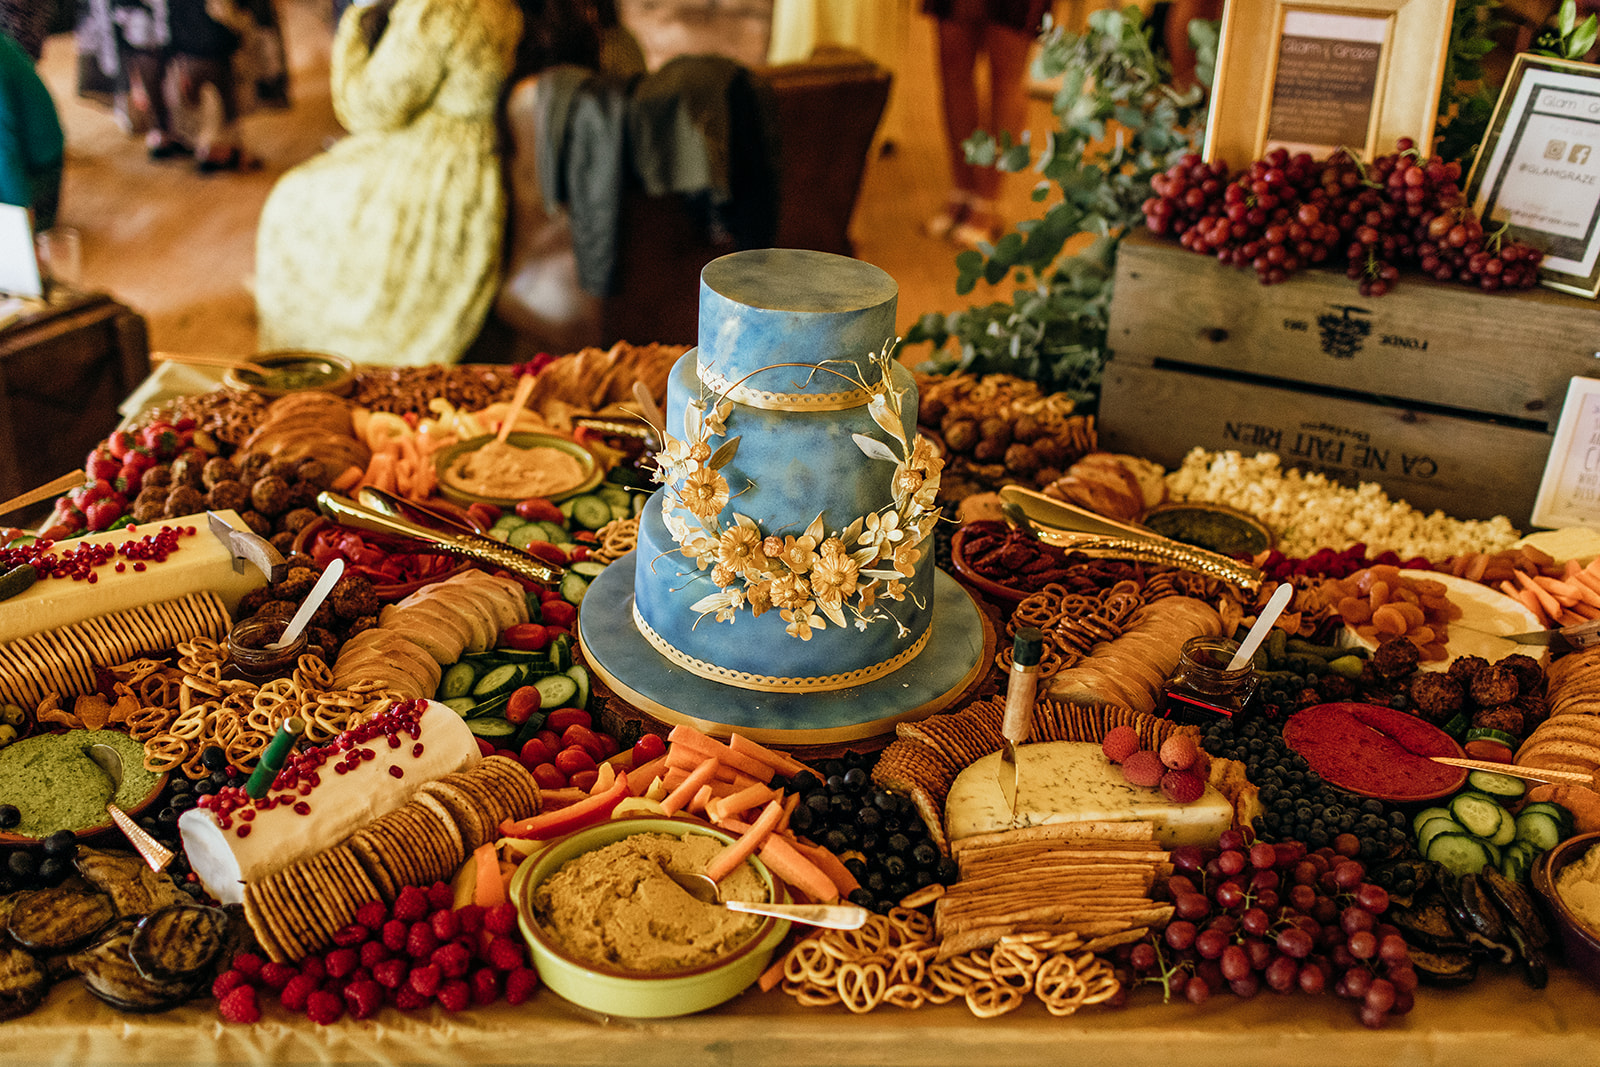 Wedding cheeseboard